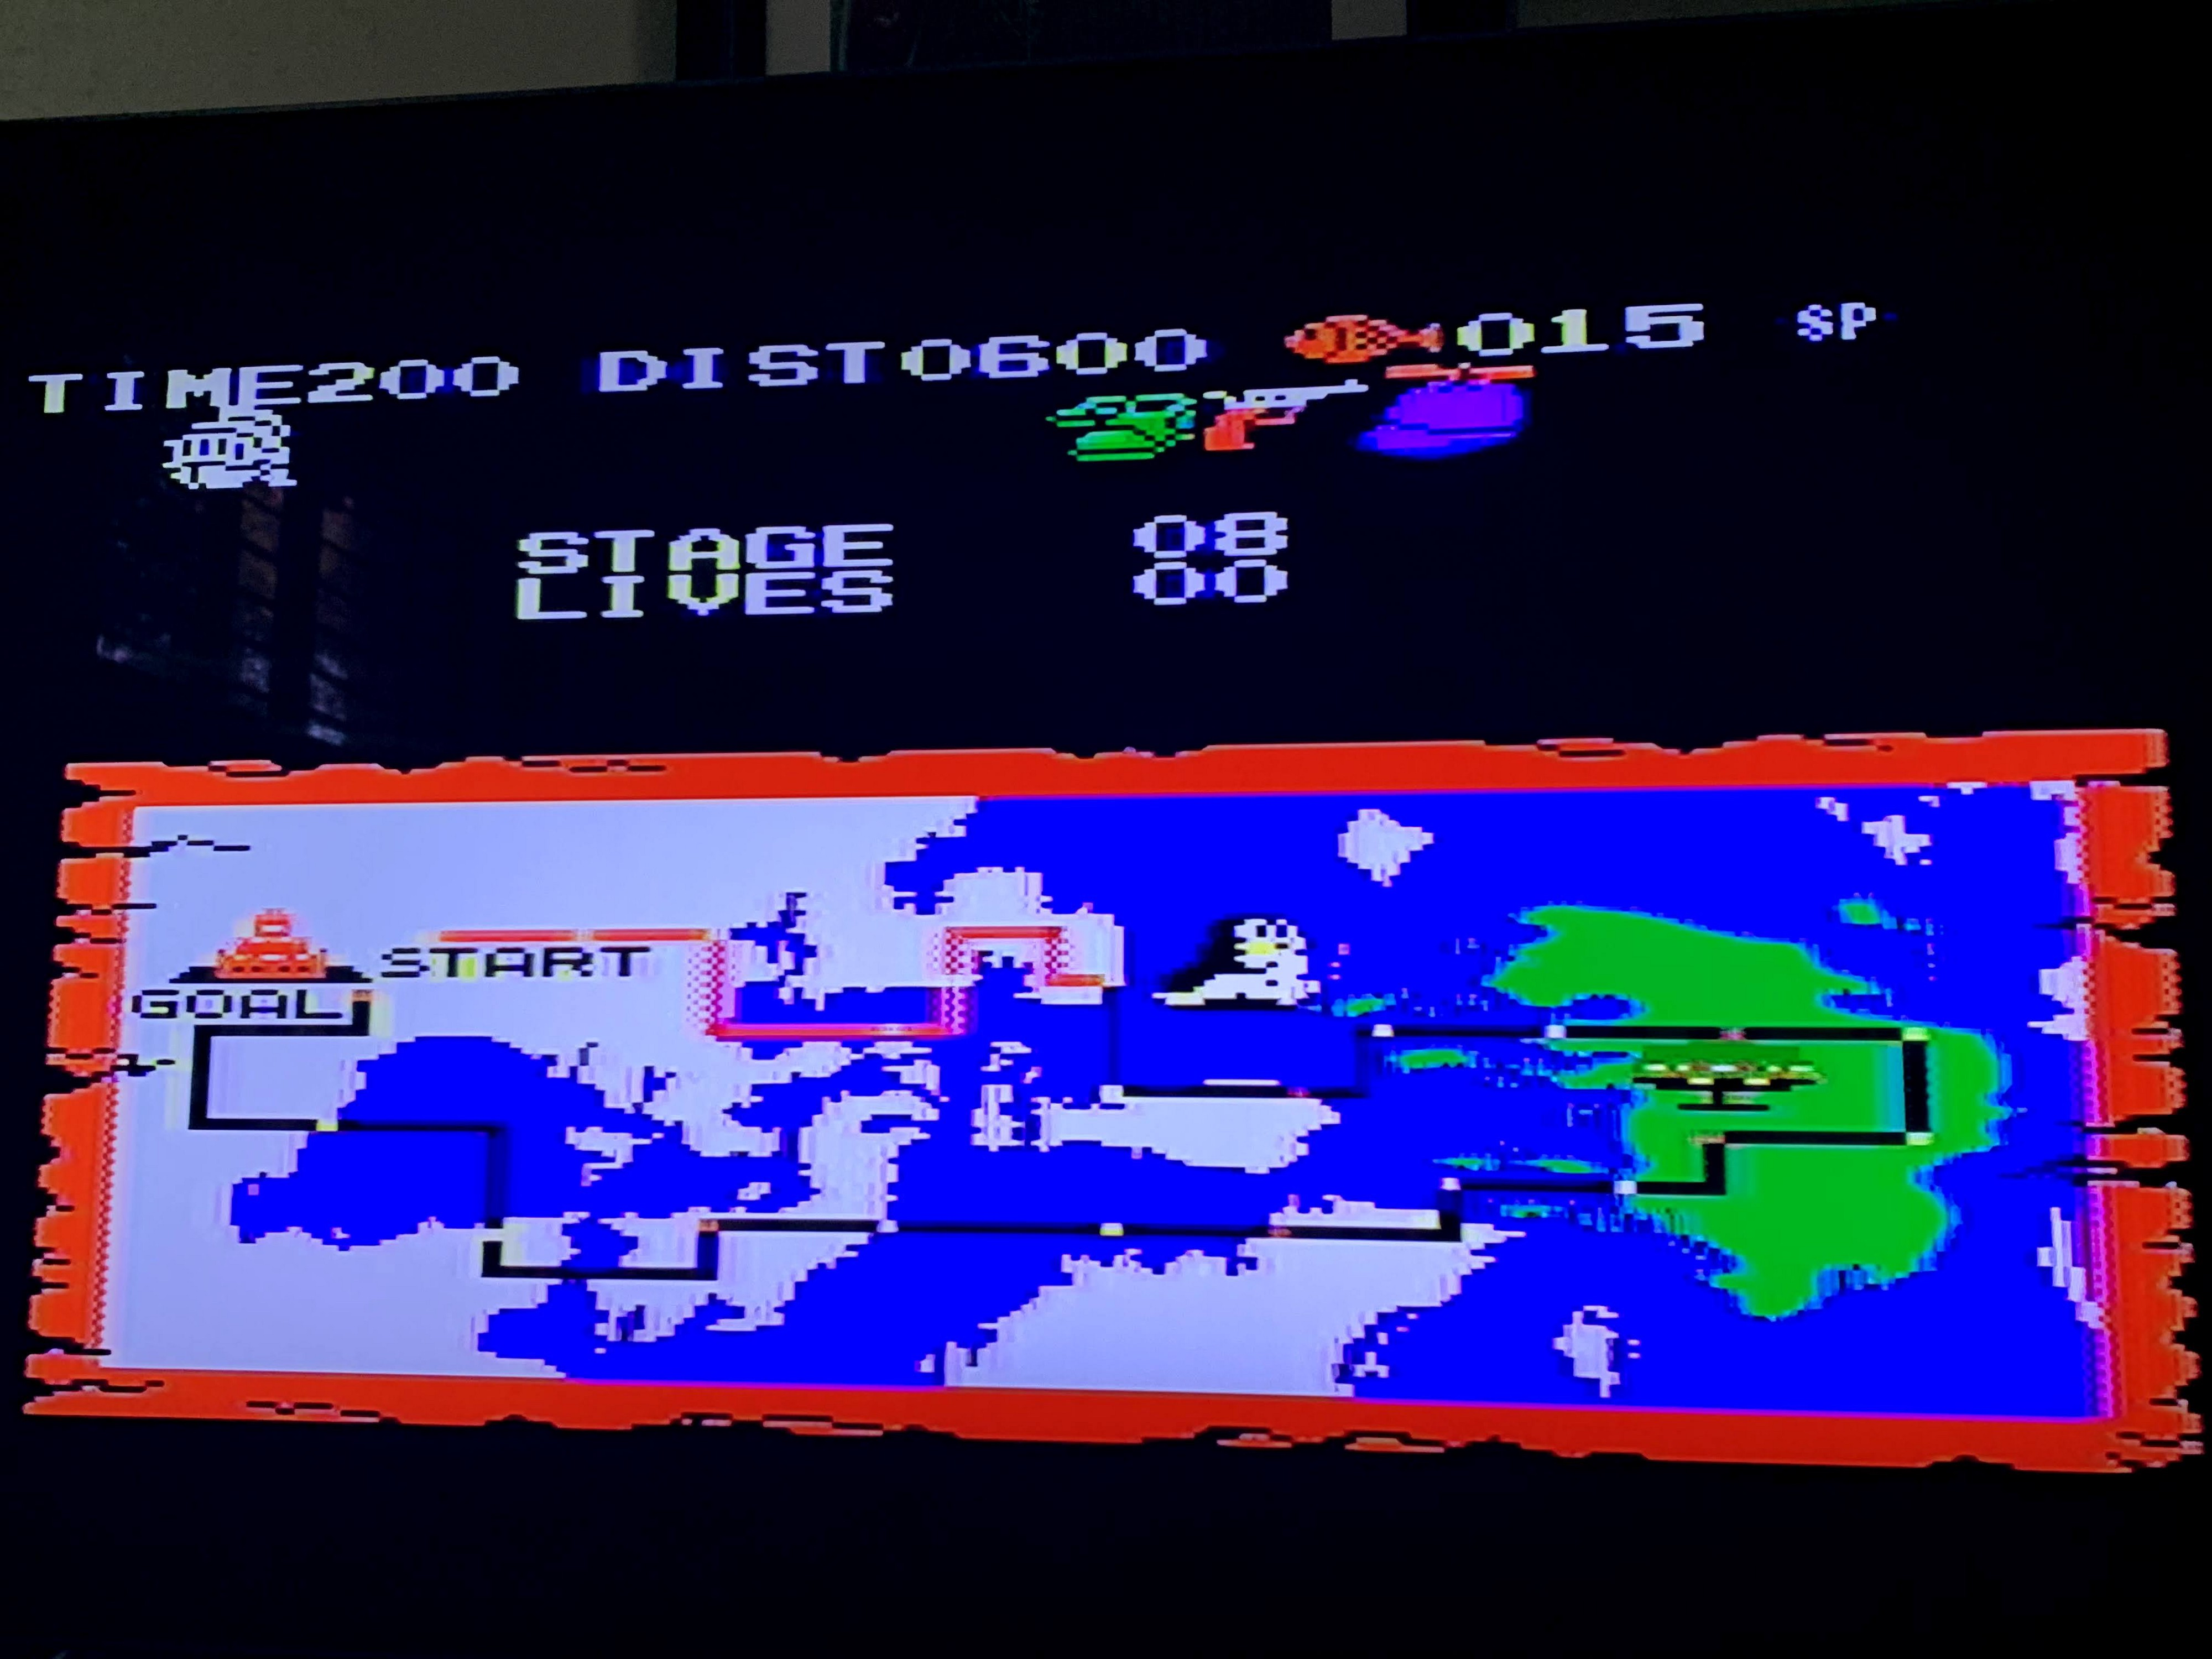 A map showing the player's progress through the game's map.